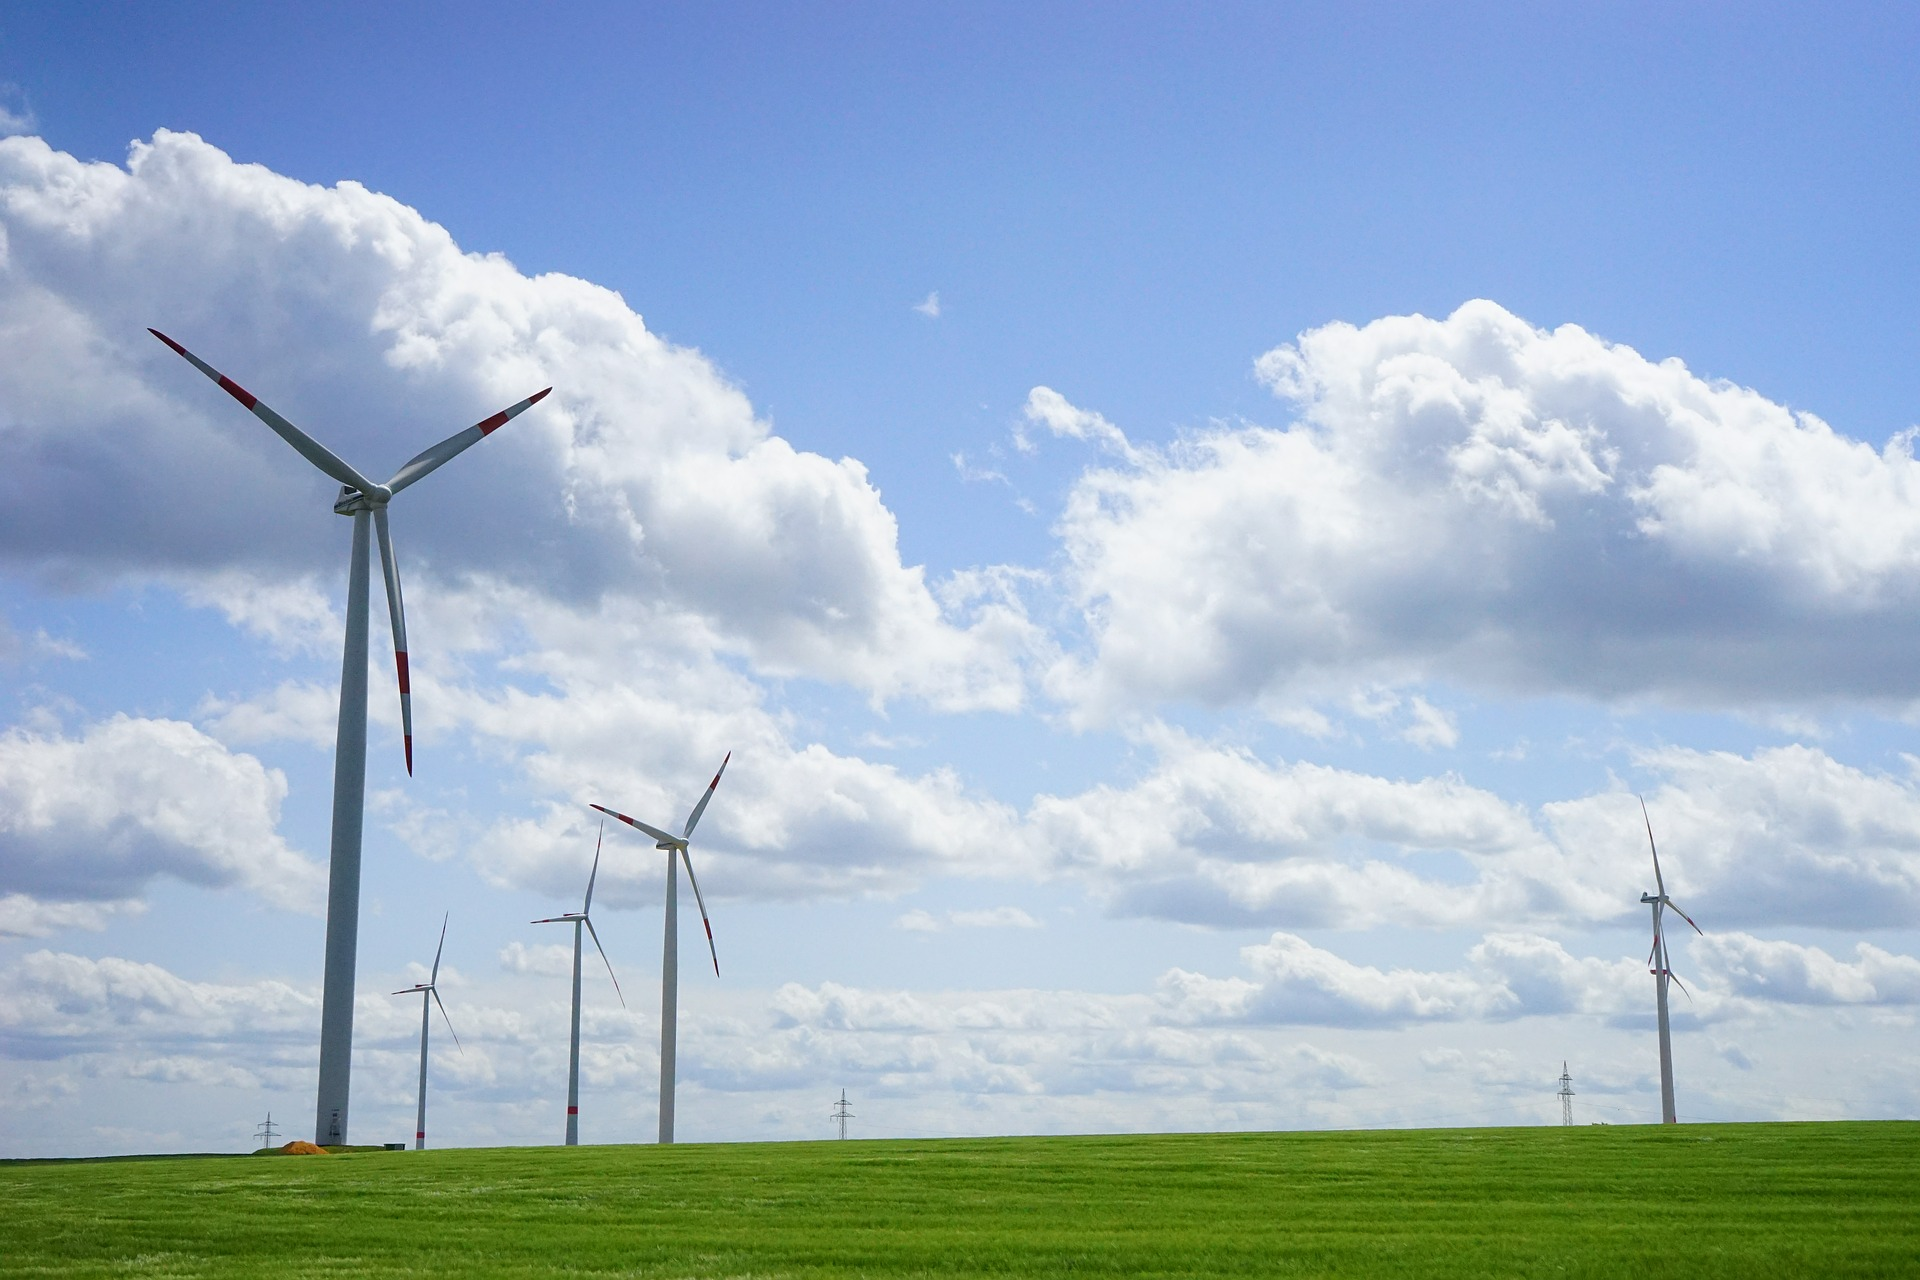 OP-ED. Composites and Renewable Energy Are Powering the Future